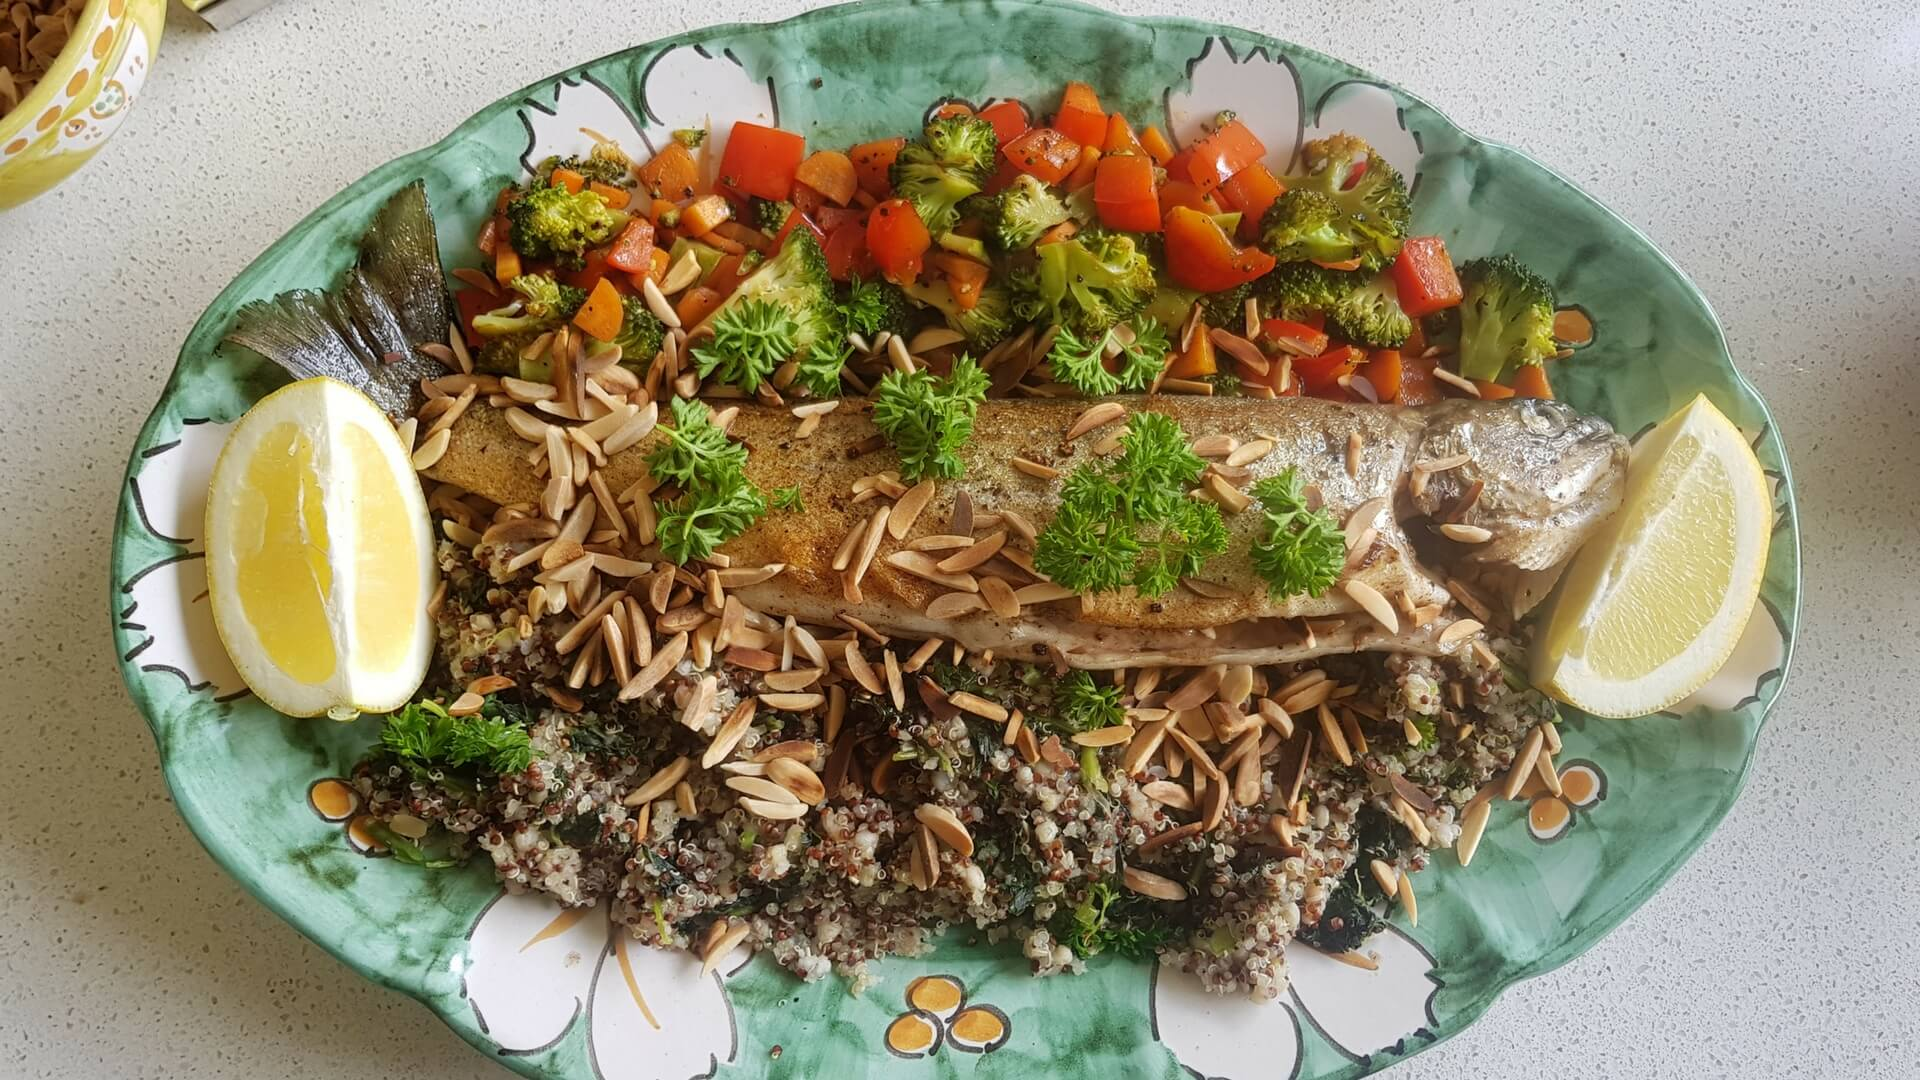 Trout with quinoa and veggies